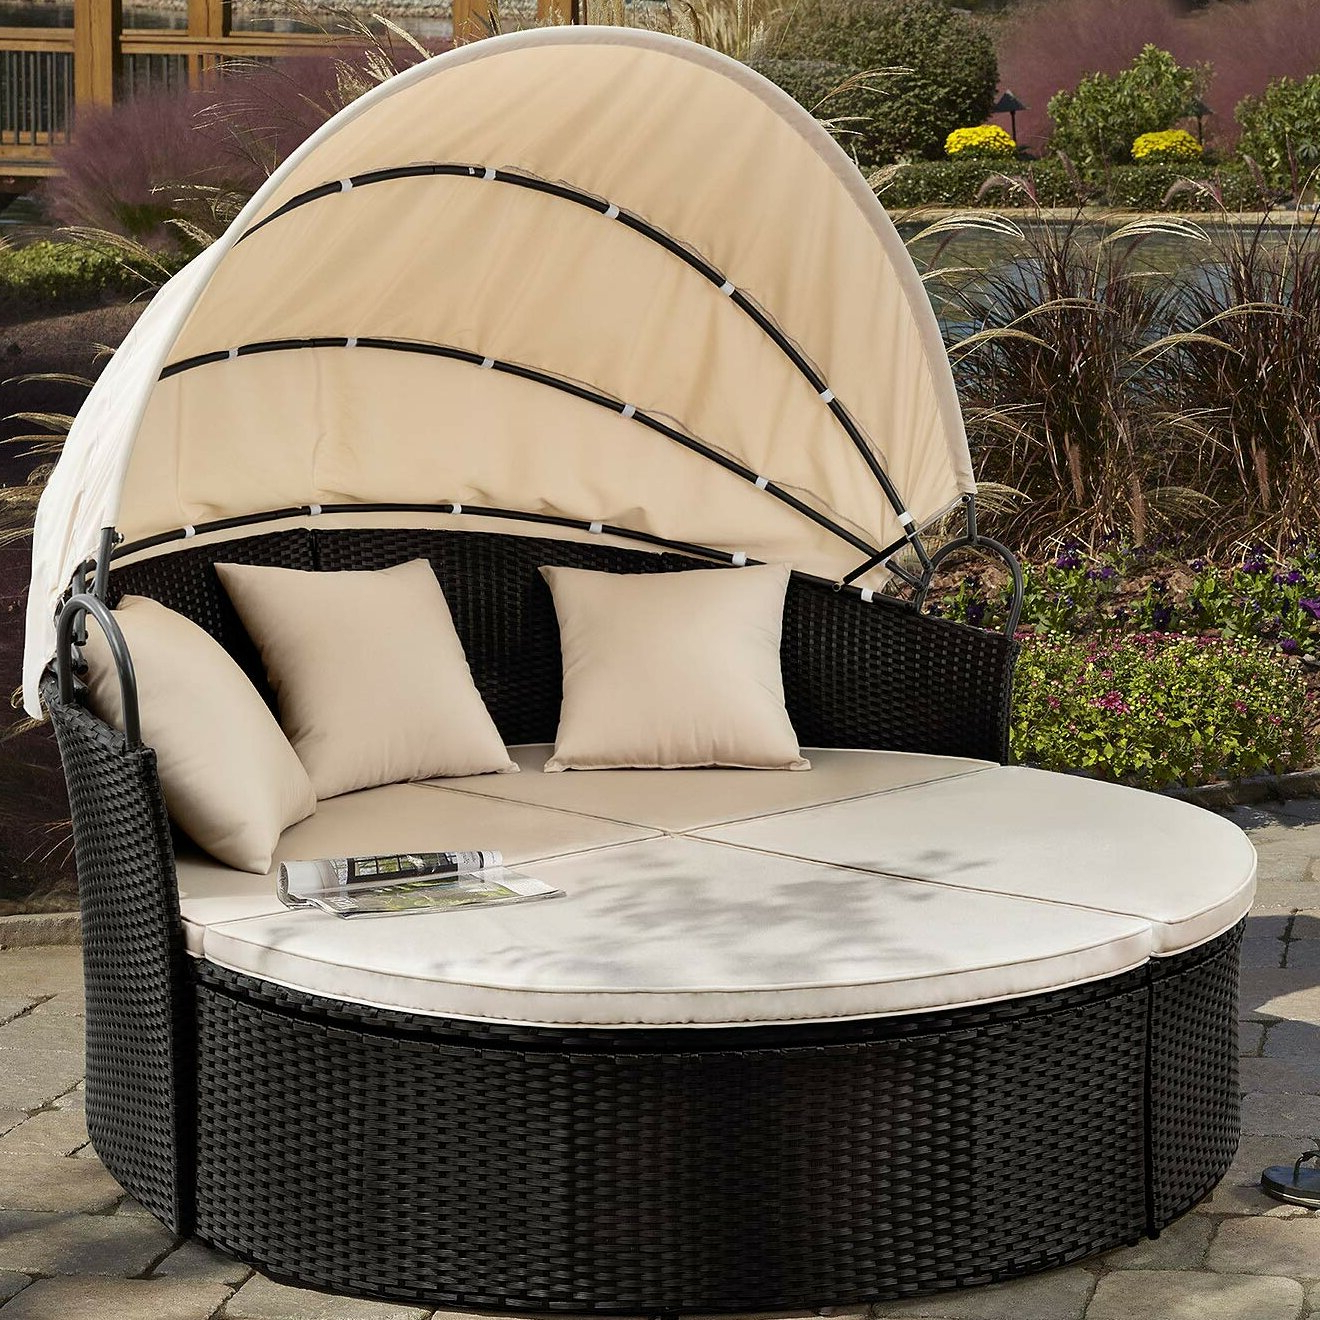 Leiston Round Patio Daybed With Cushions Intended For Fashionable Patio Daybeds With Cushions (View 13 of 20)